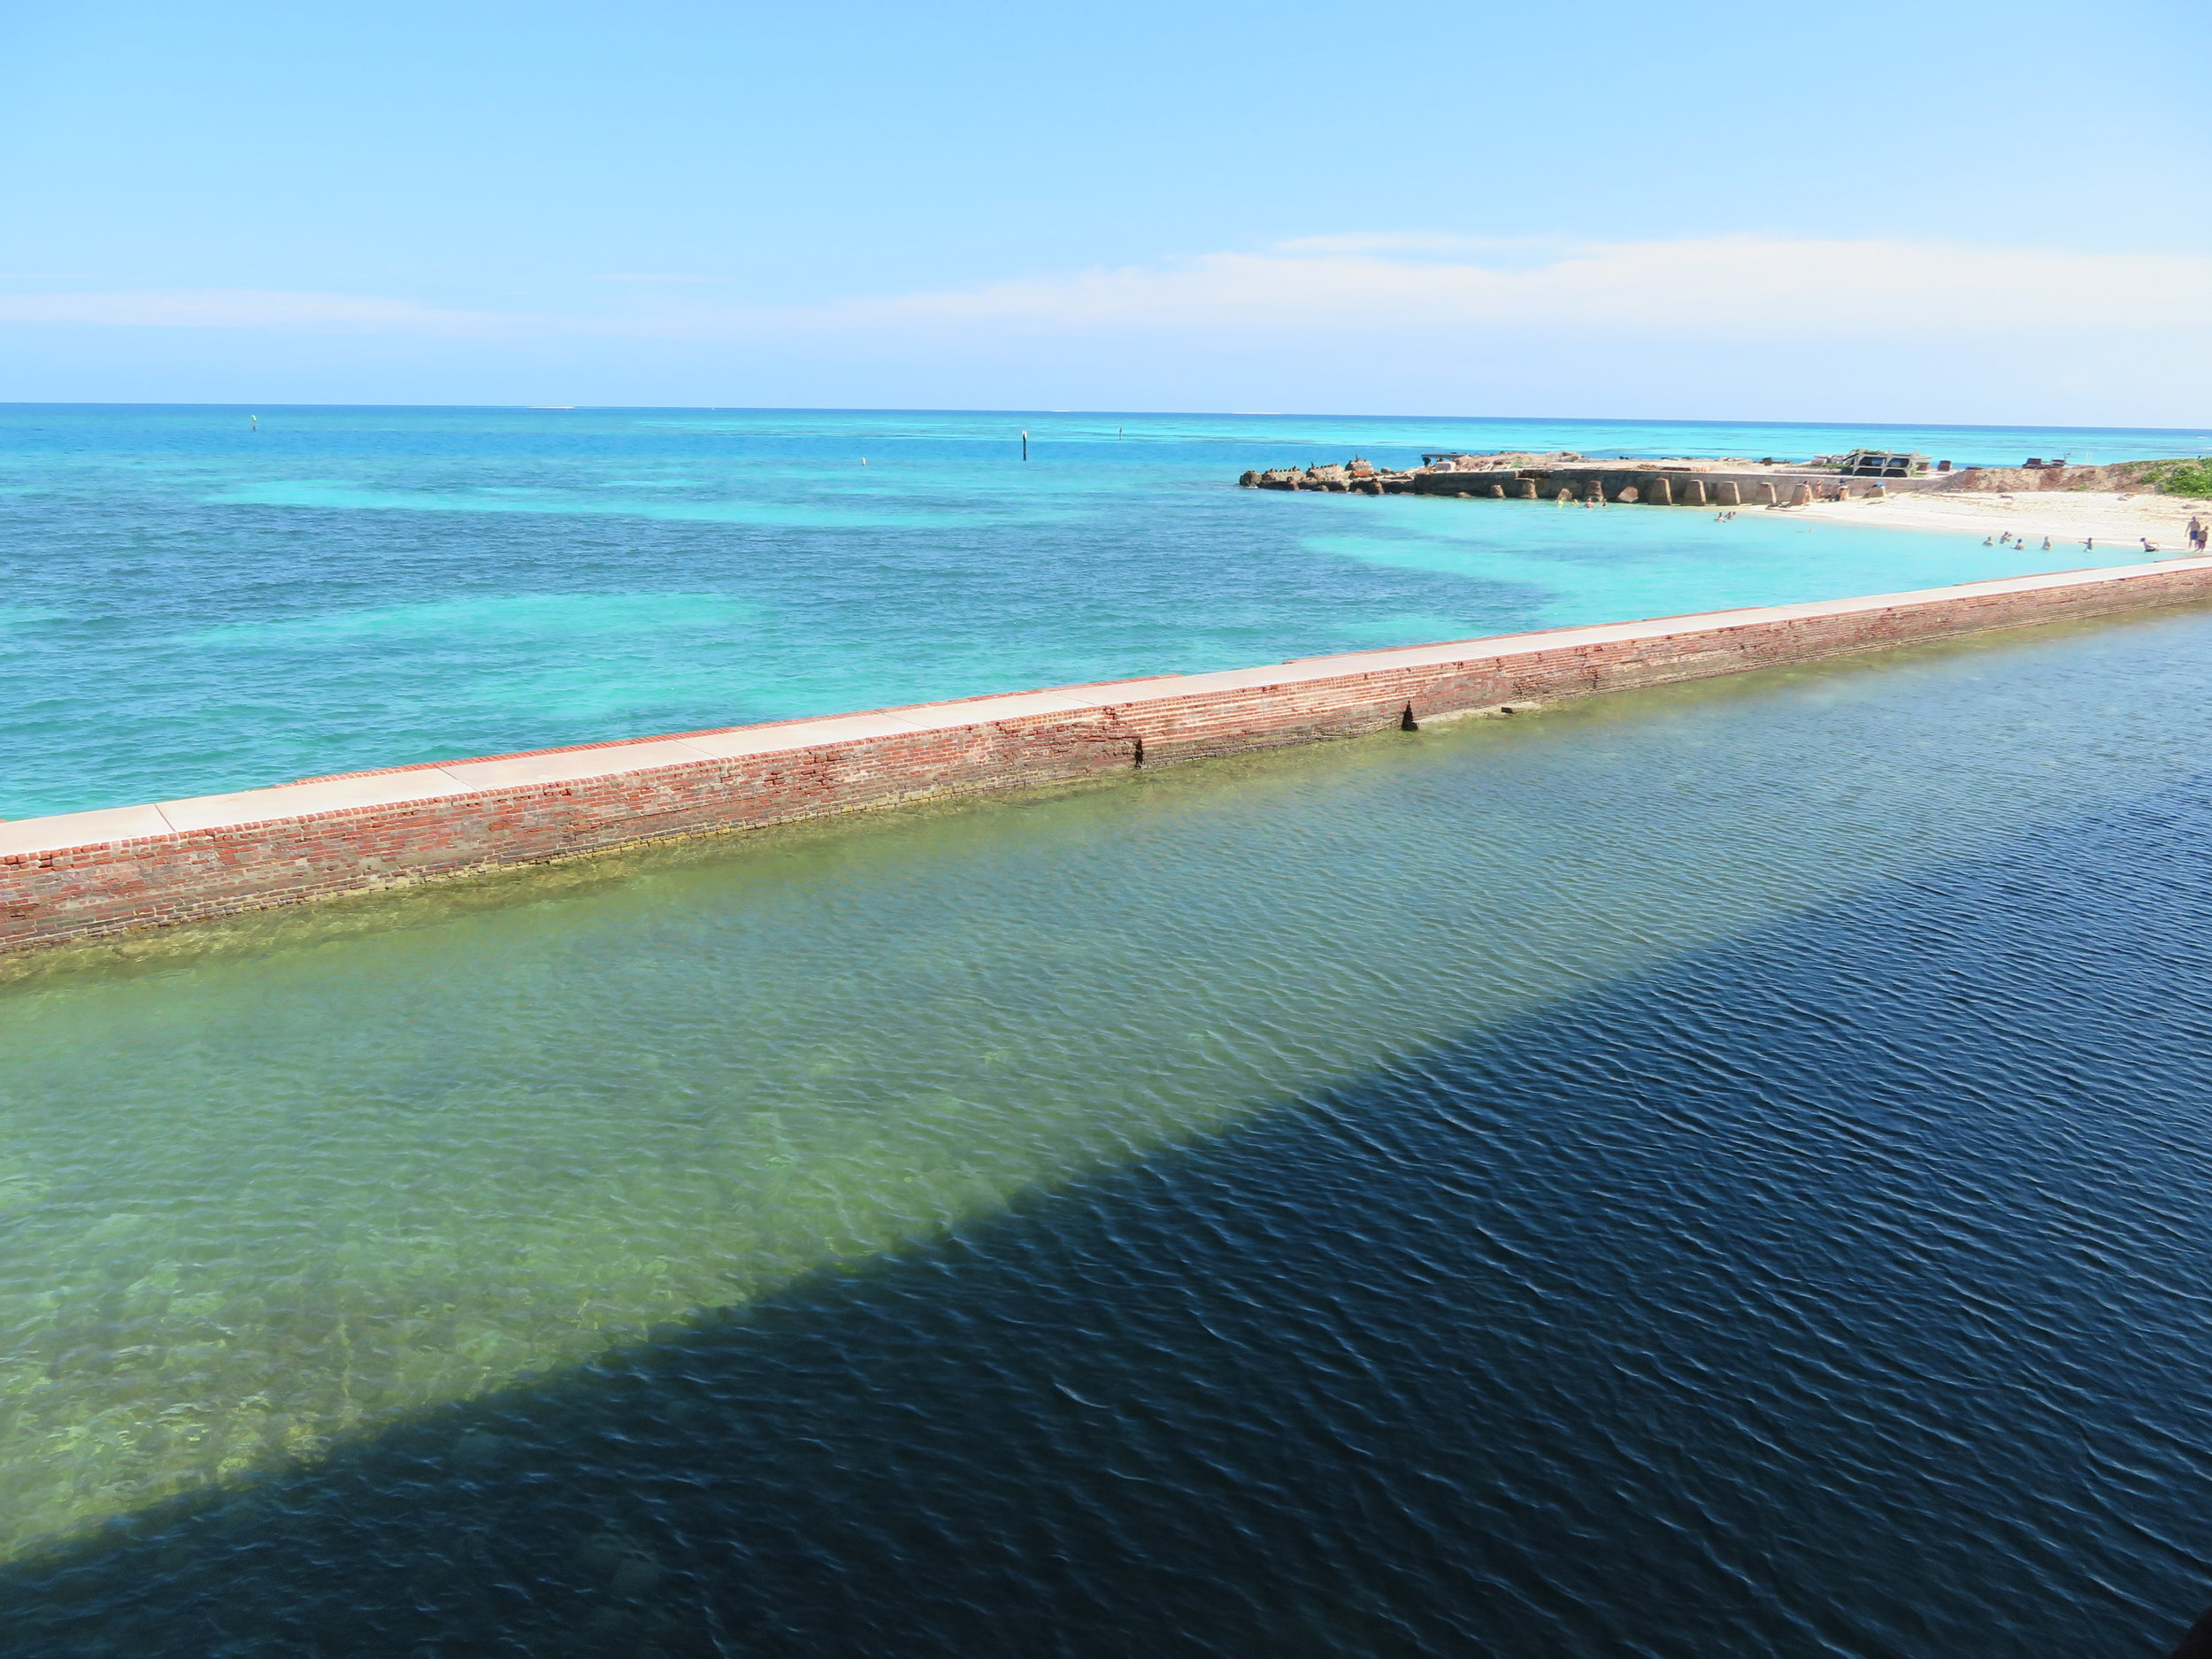 Hard to beat views atop Fort Jefferson looking out into the Gulf of Mexico.